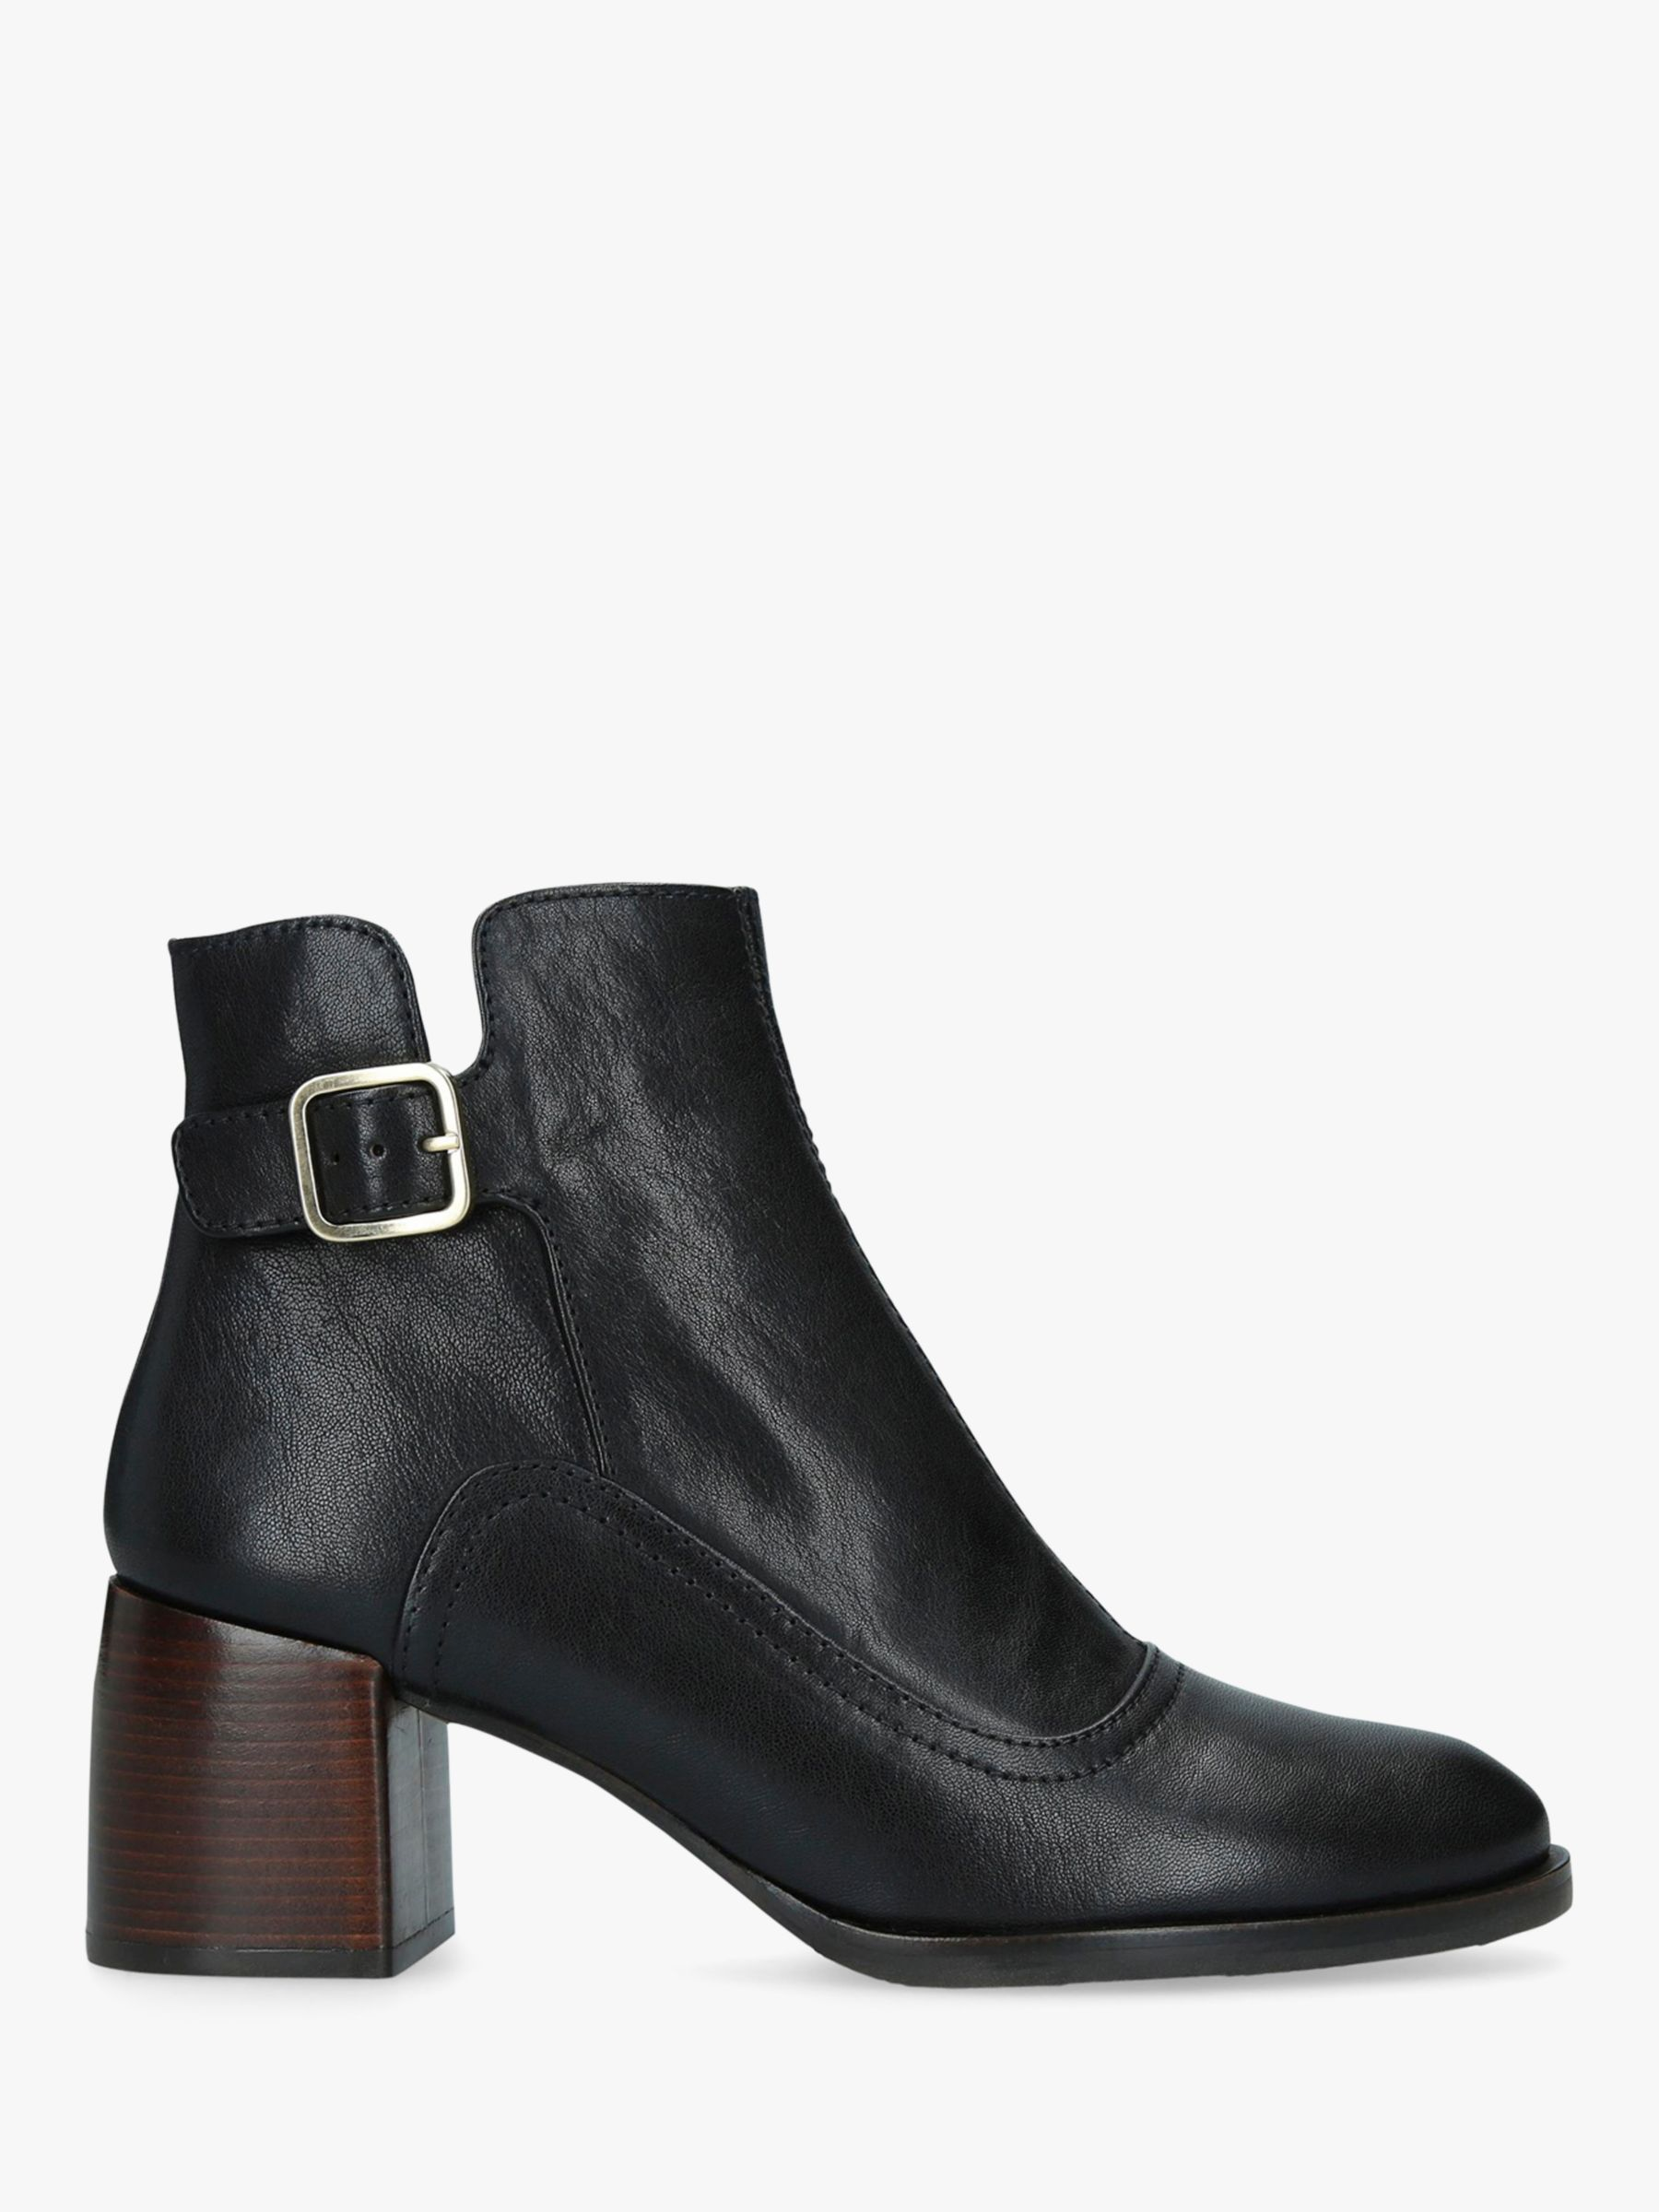 Chie Mihara Chie Mihara Or-Omayo Block Heel Ankle Boots, Black